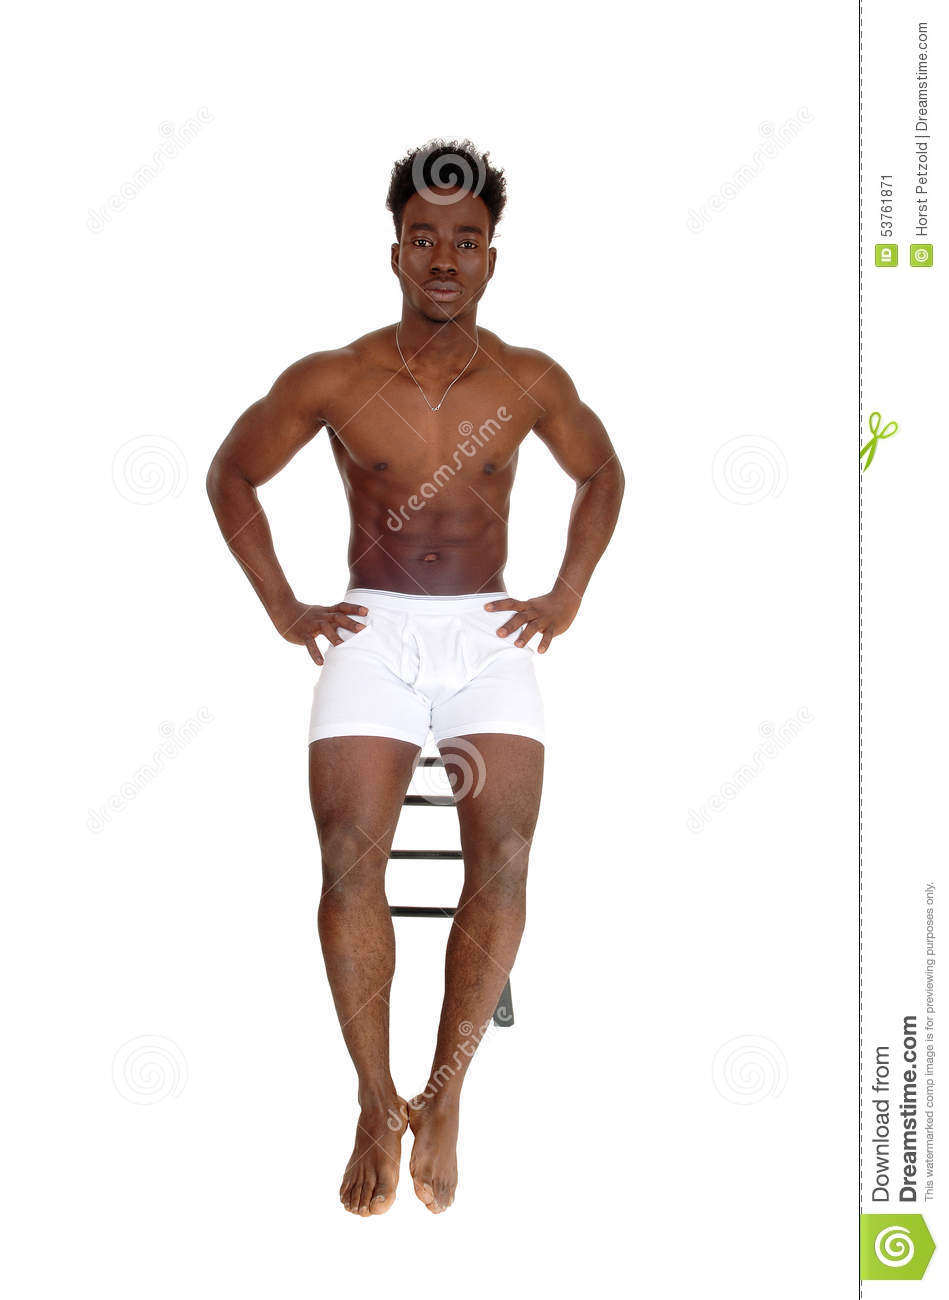 Black Man In White Underwear. Stock Photo - Image: 53761871